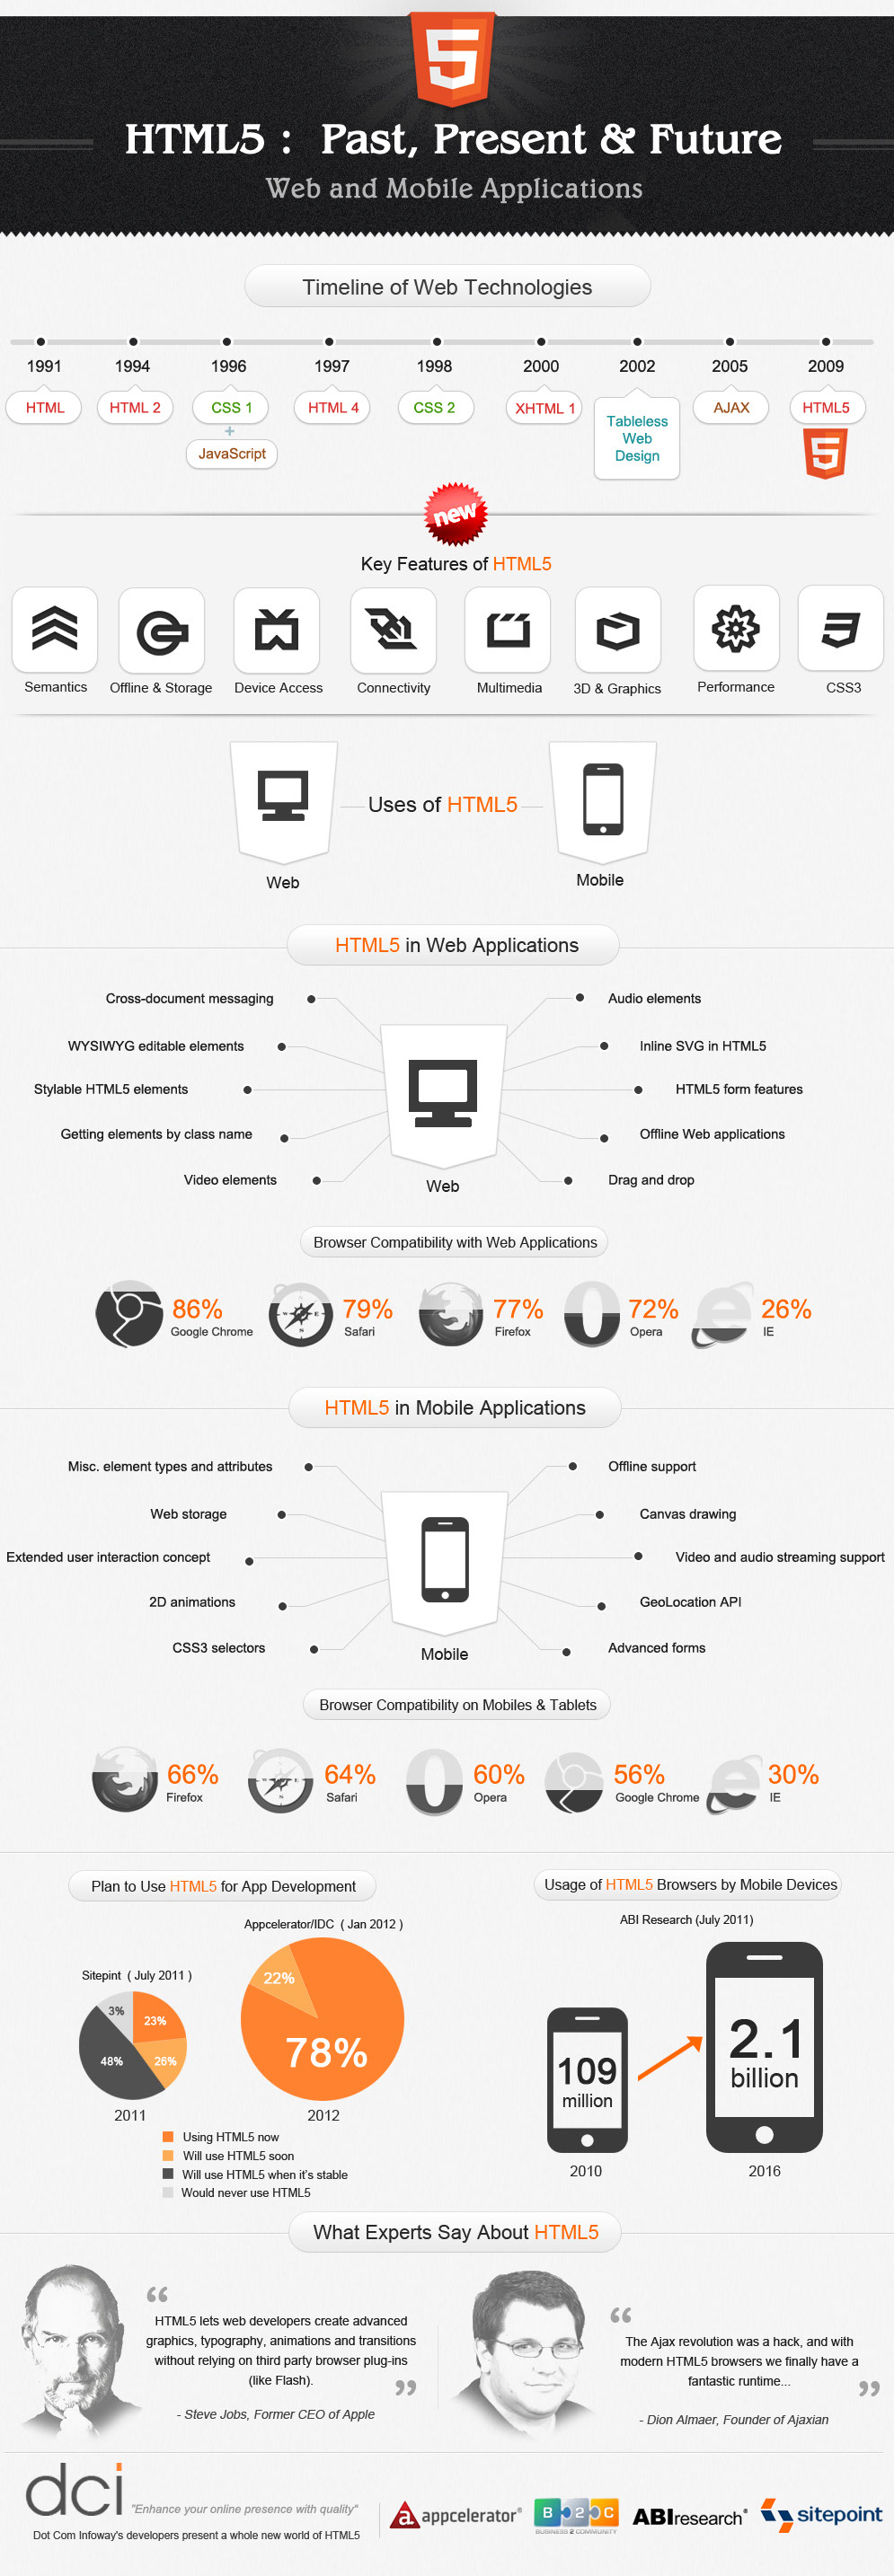 Html5 Evolution-infographic